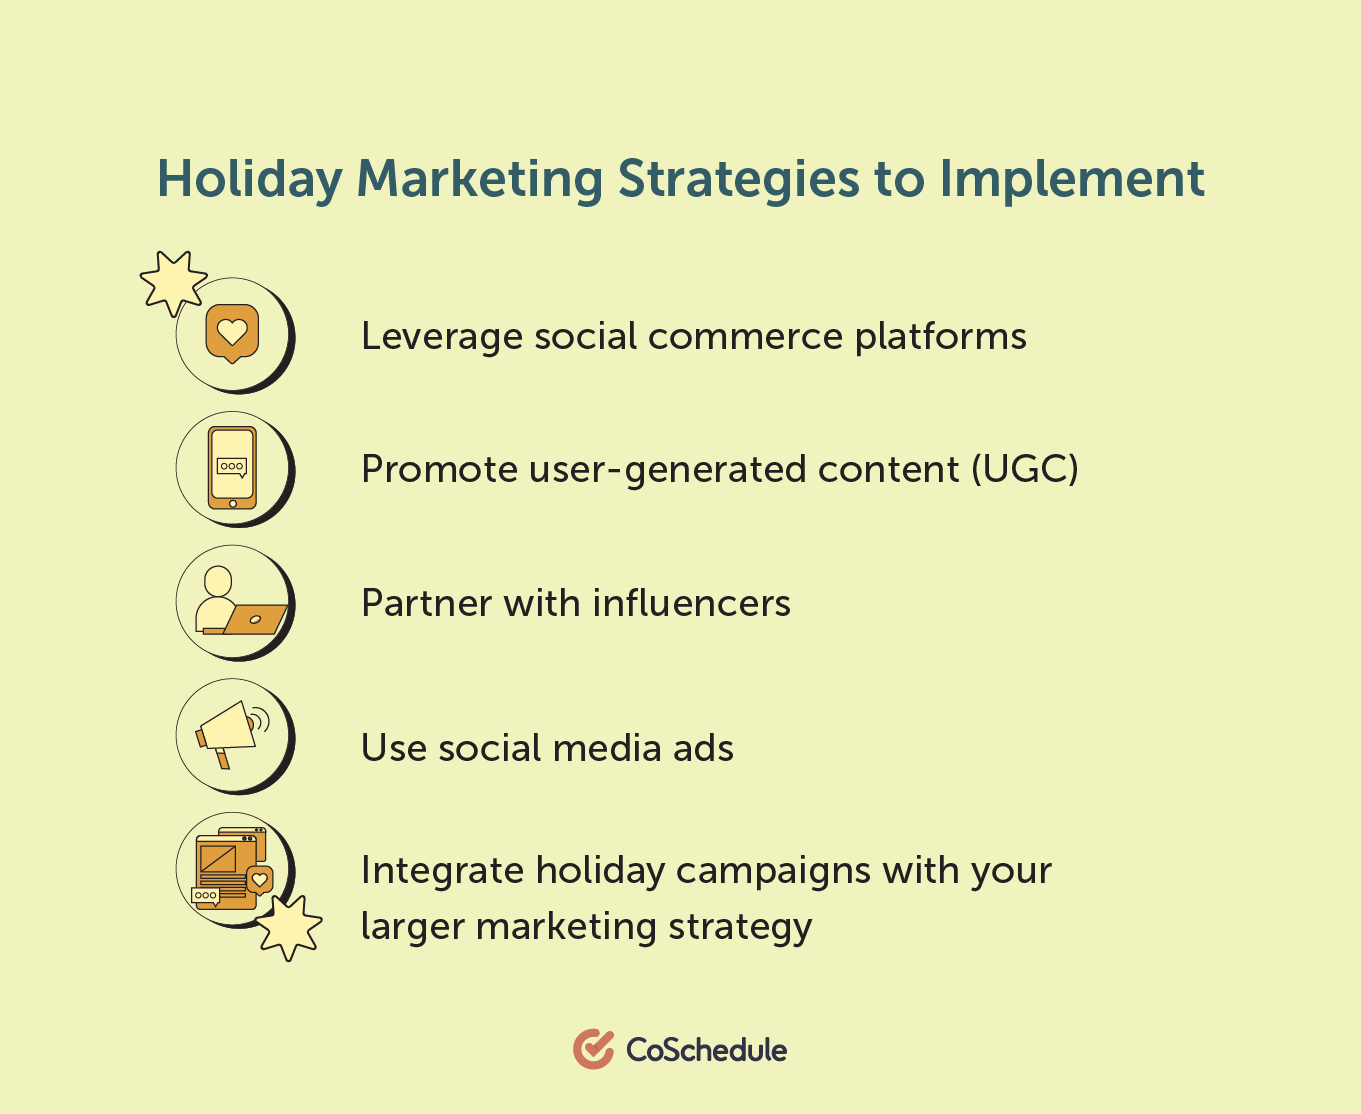 Holiday marketing strategies to implement